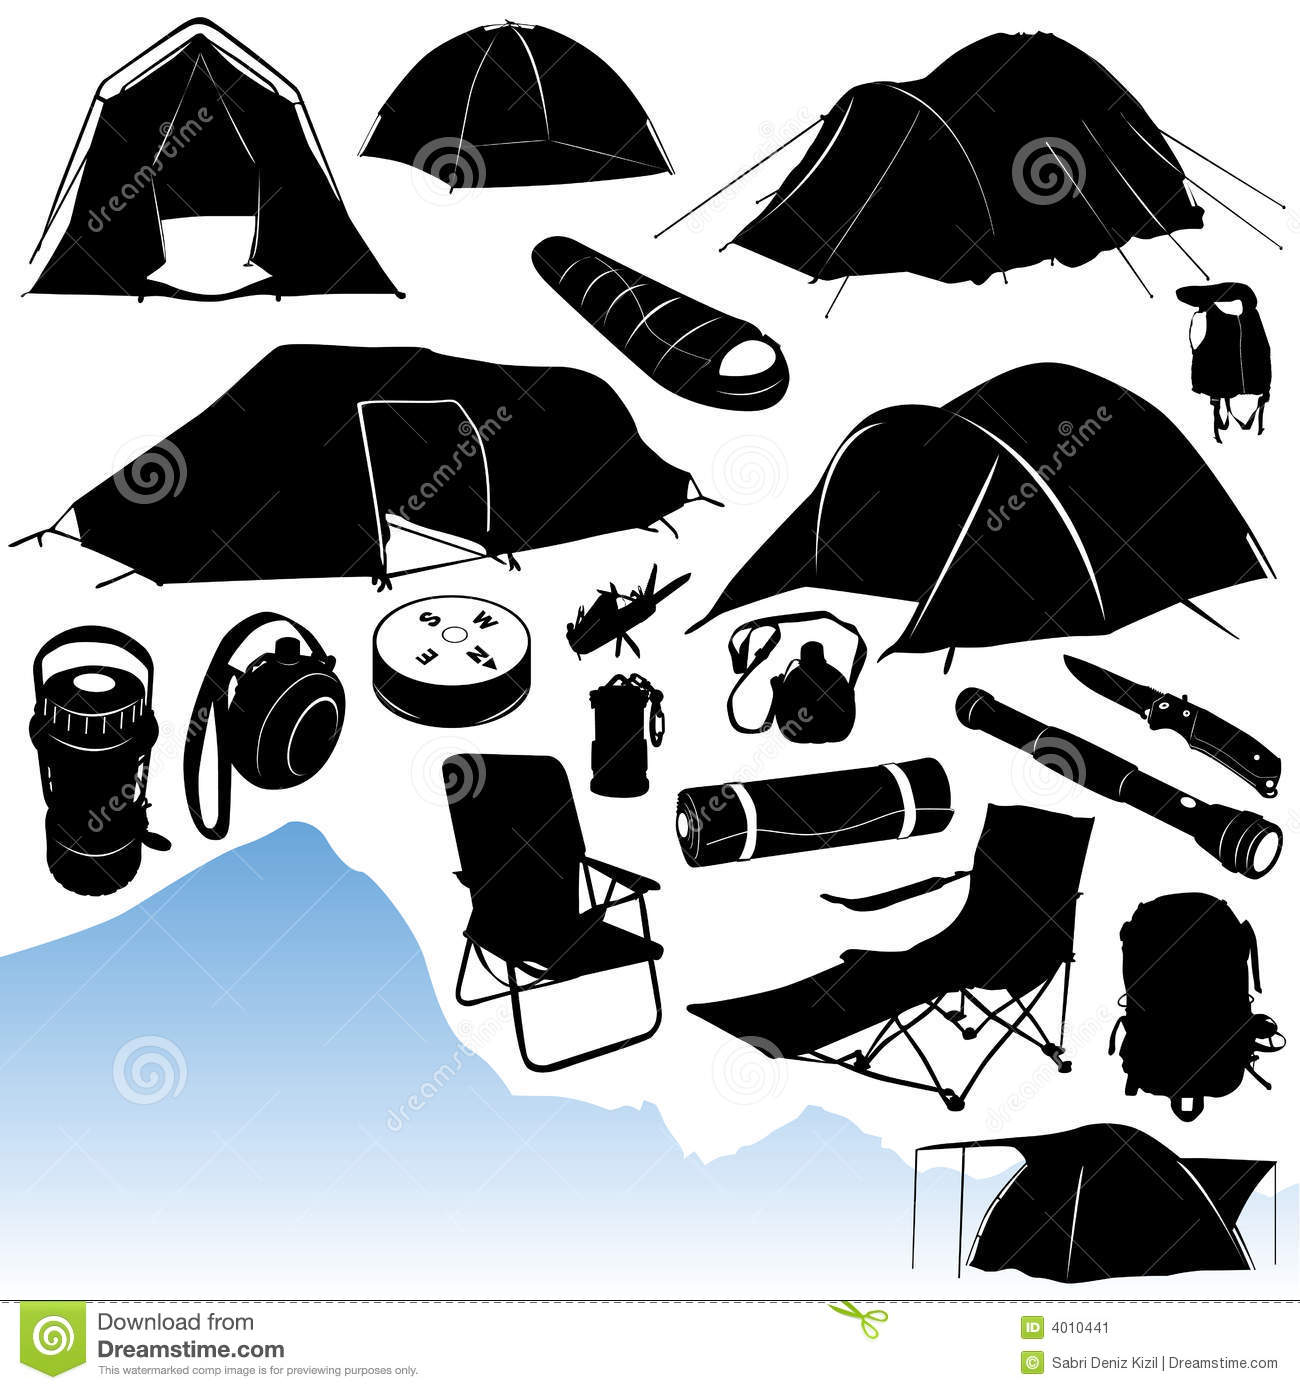 Camping Vector Stock Image - Image: 4010441